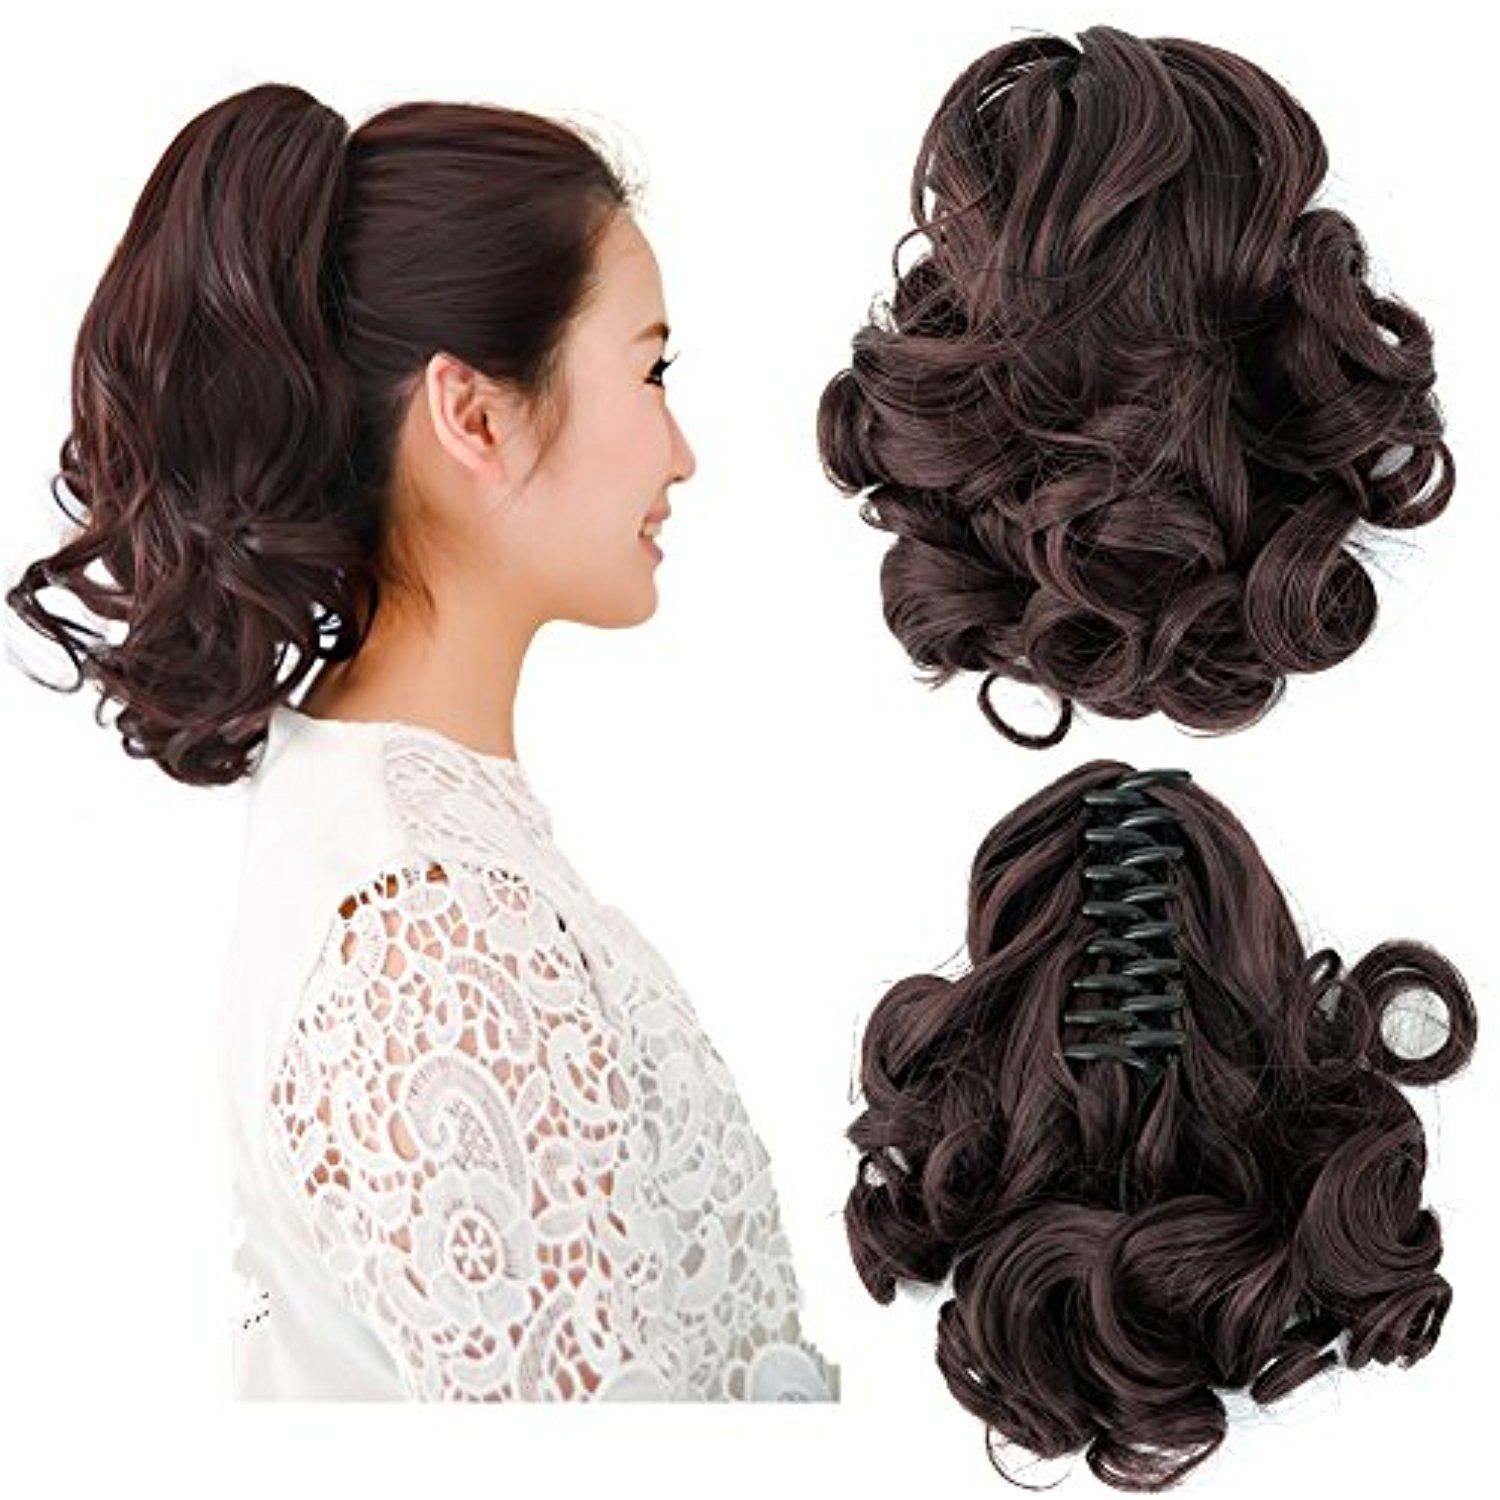 Beauty Angelbella New Popular Women Clip On Ponytail Long Claw Curly